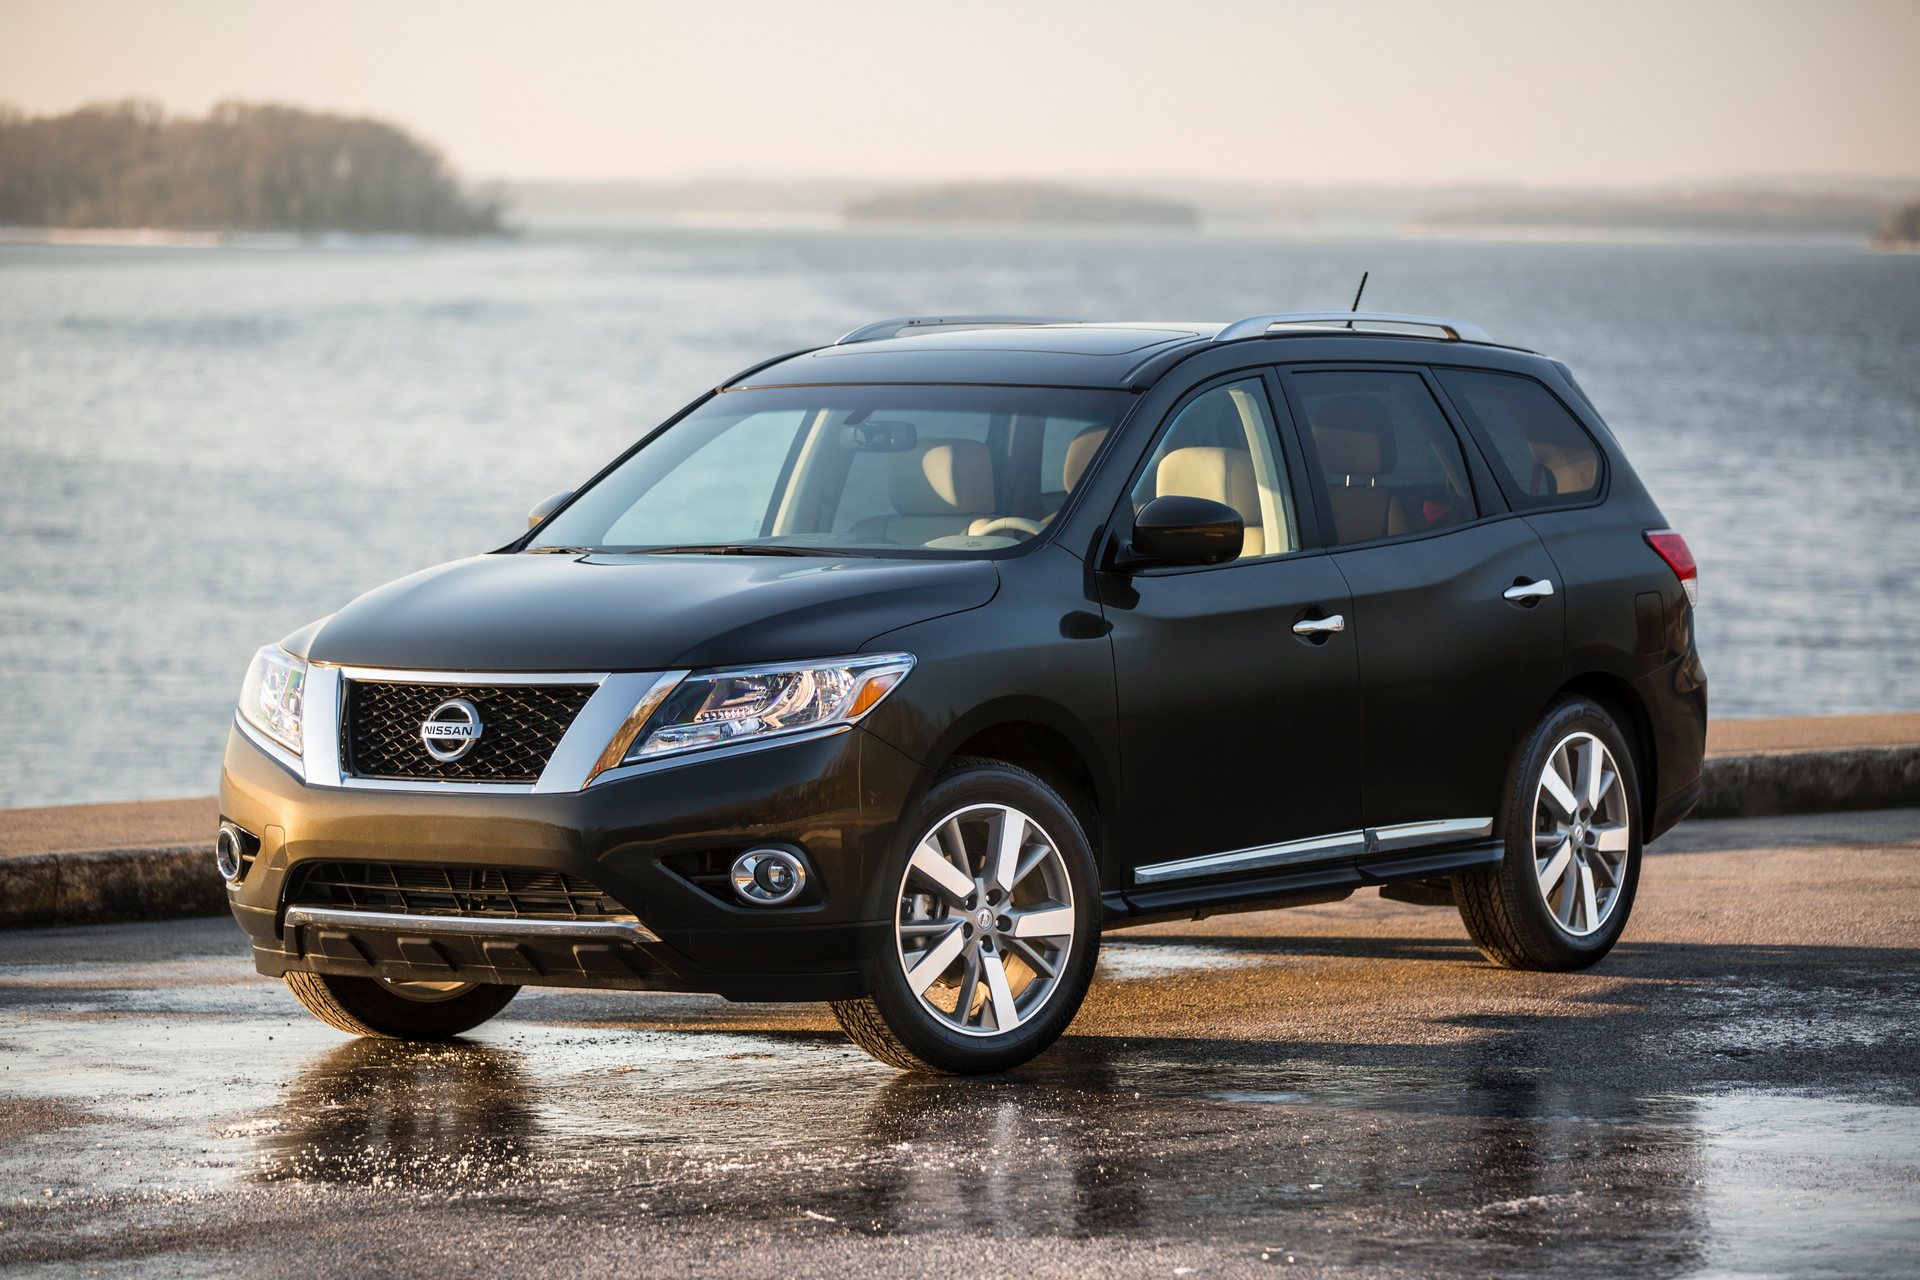 2015 Nissan Pathfinder © Nissan Motor Co., Ltd.